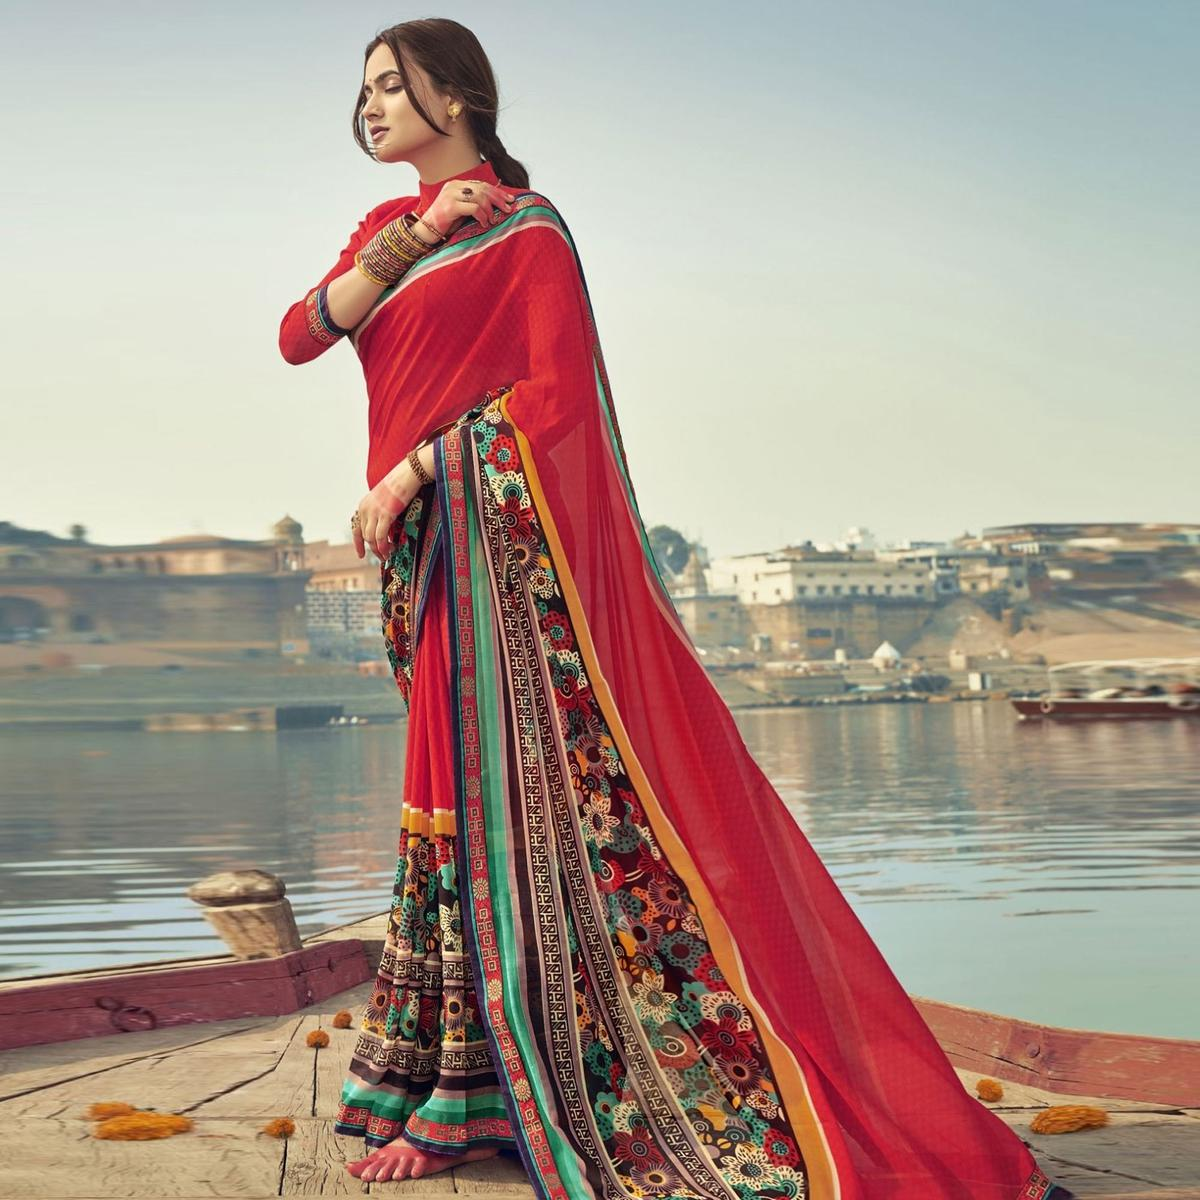 Triveni Red Colored Georgette Printed Saree With Blouse Piece